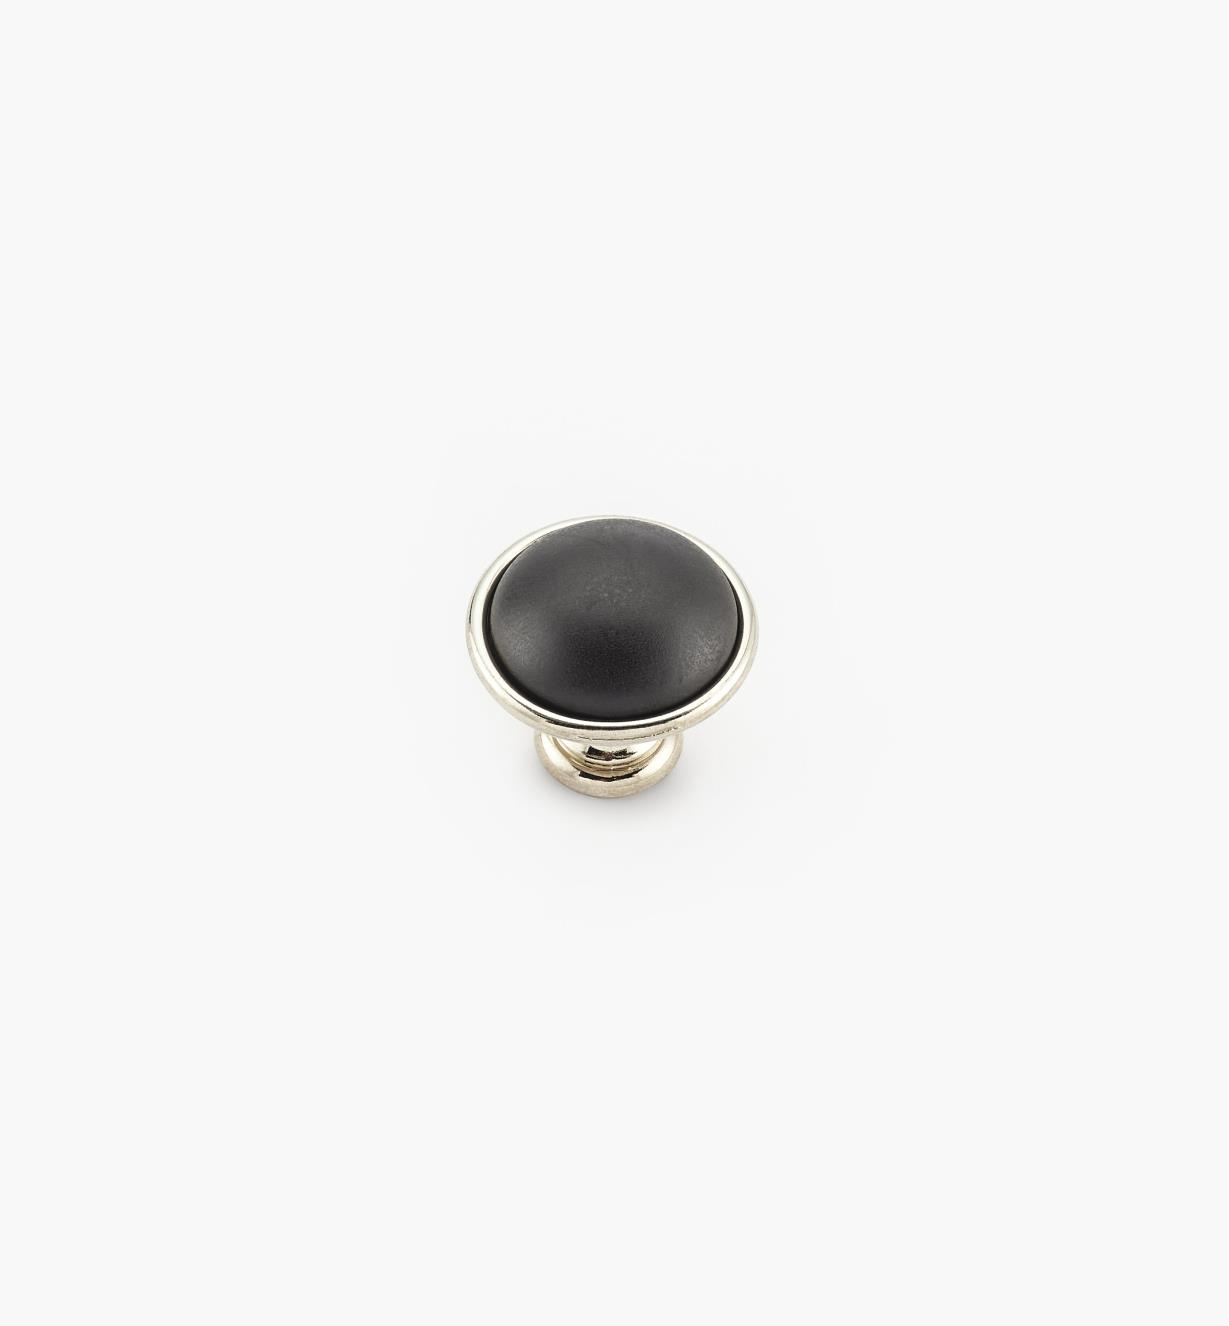 00A7762 - Bouton noir New Deco, 38 mm